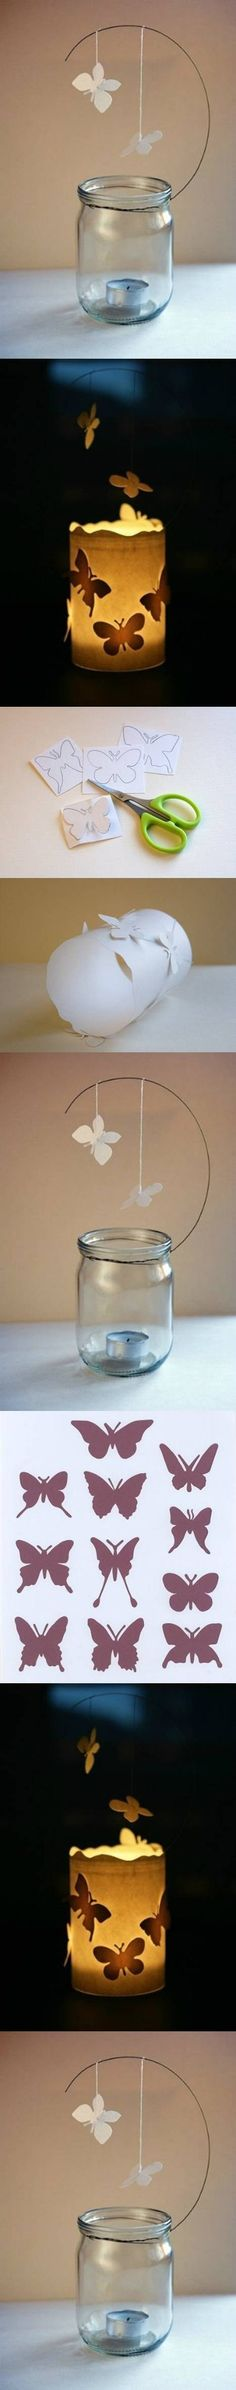 DIY Butterfly Candle Decor <3